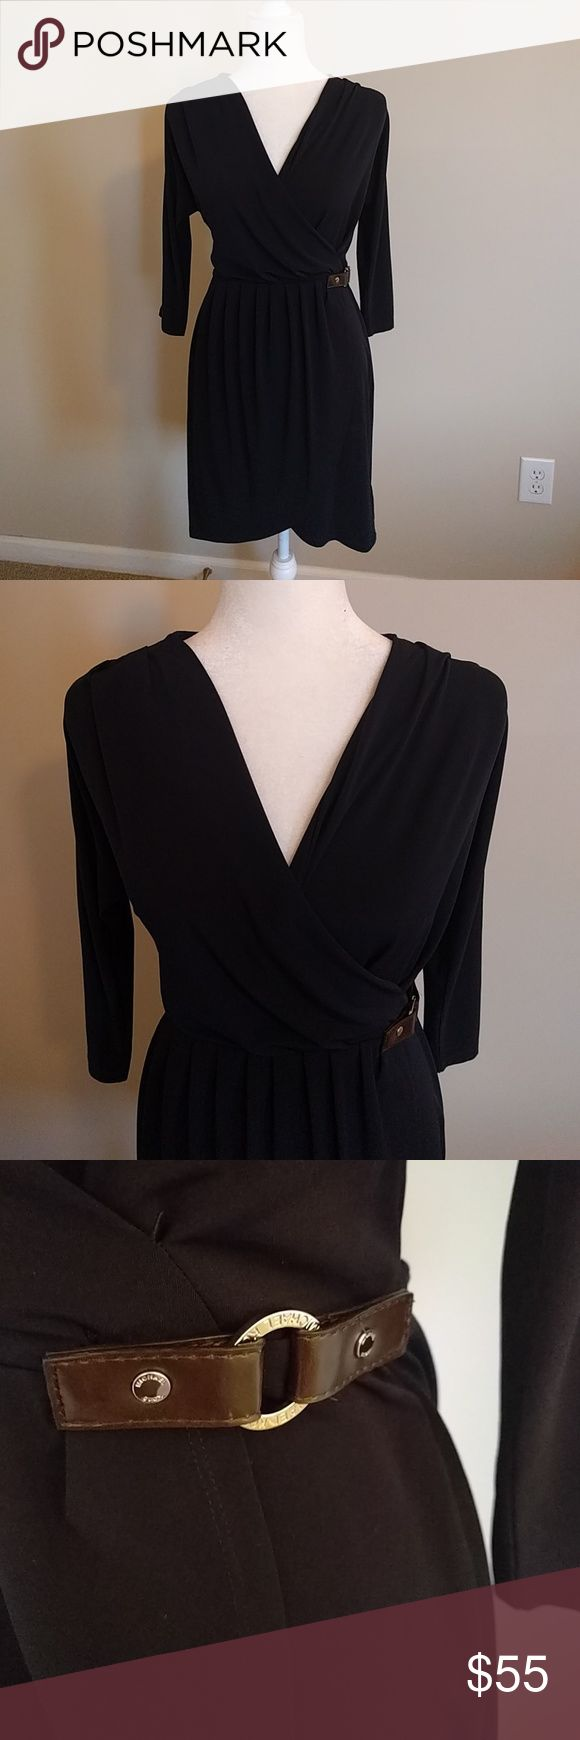 MICHAEL Michael Kors navy wrap dress PM NO OFFERS PLEASE. Priced as low as I can go.  MICHAEL Michael Kors navy blue dress. Size US Petite M Great staple piece to any wardrobe. Excellent used condition. No mark or tears. Smoke and pet free home. MICHAEL Michael Kors Dresses